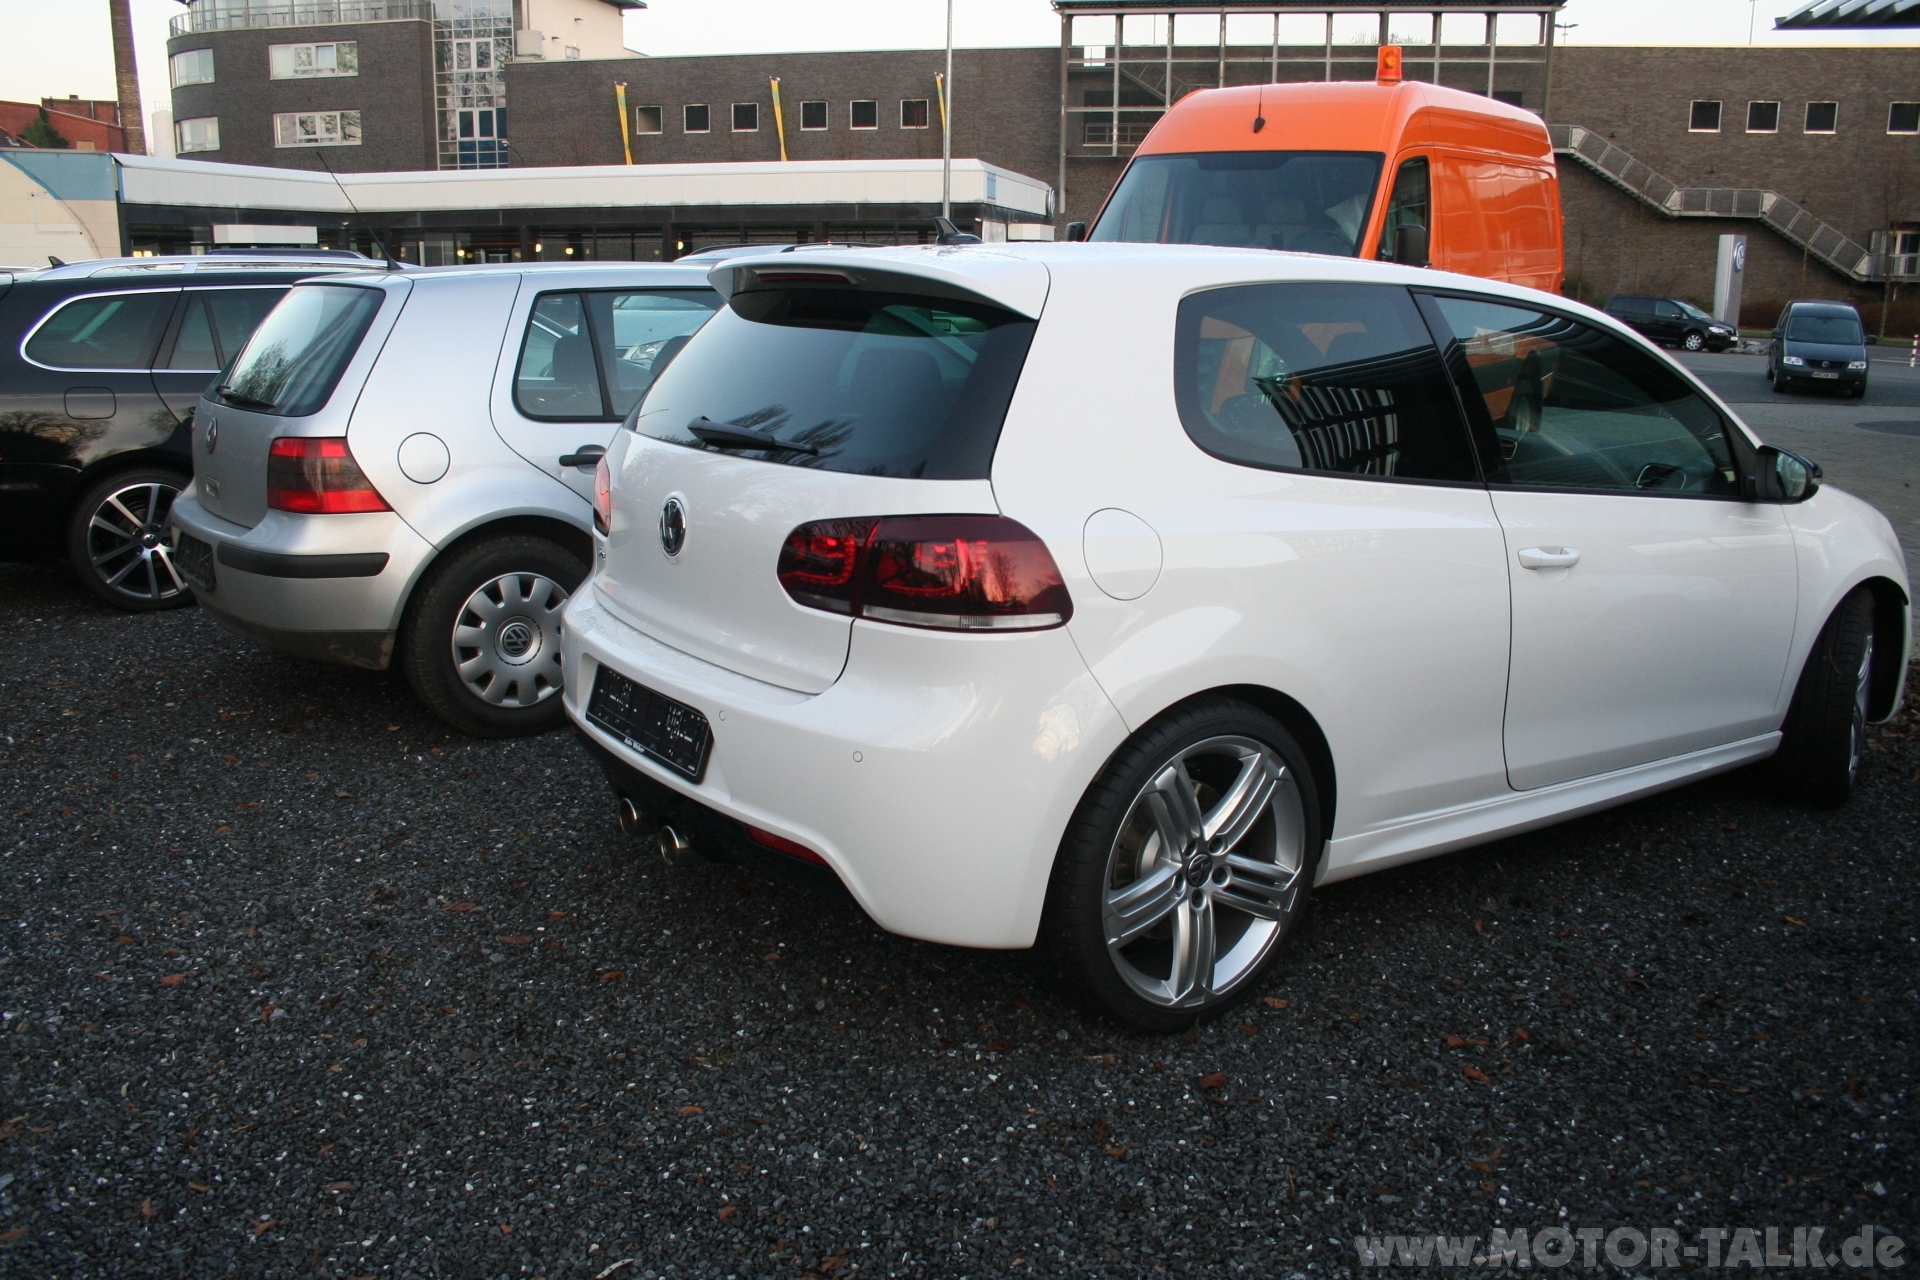 Stichworte: Golf VI R in Candy